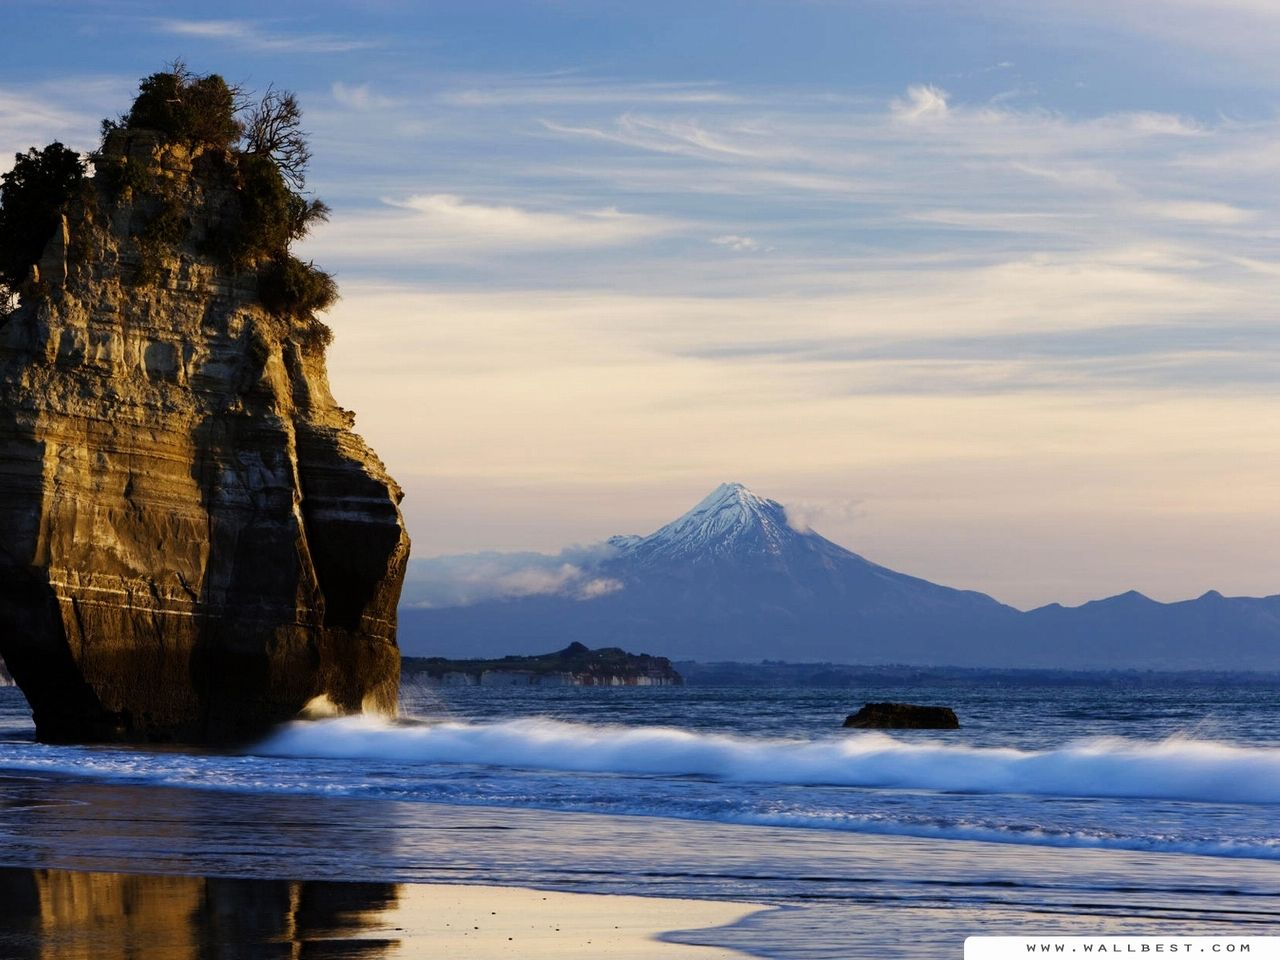 New Zealand Beaches Description Beach Mount Taranaki View 1280x960